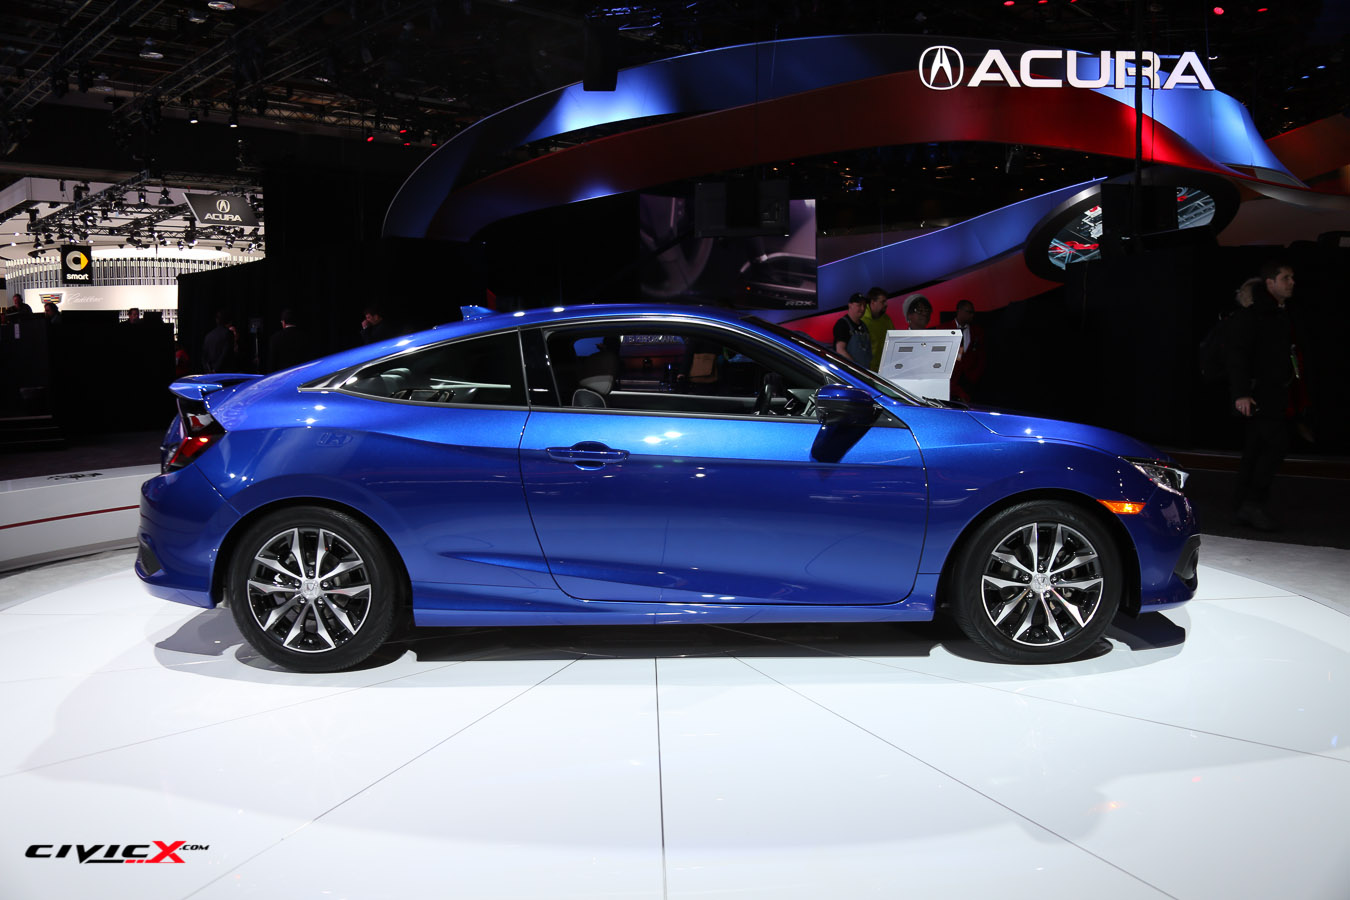 2016 Civic Coupe (Aegean Blue) - Detroit Auto Show-3.jpg